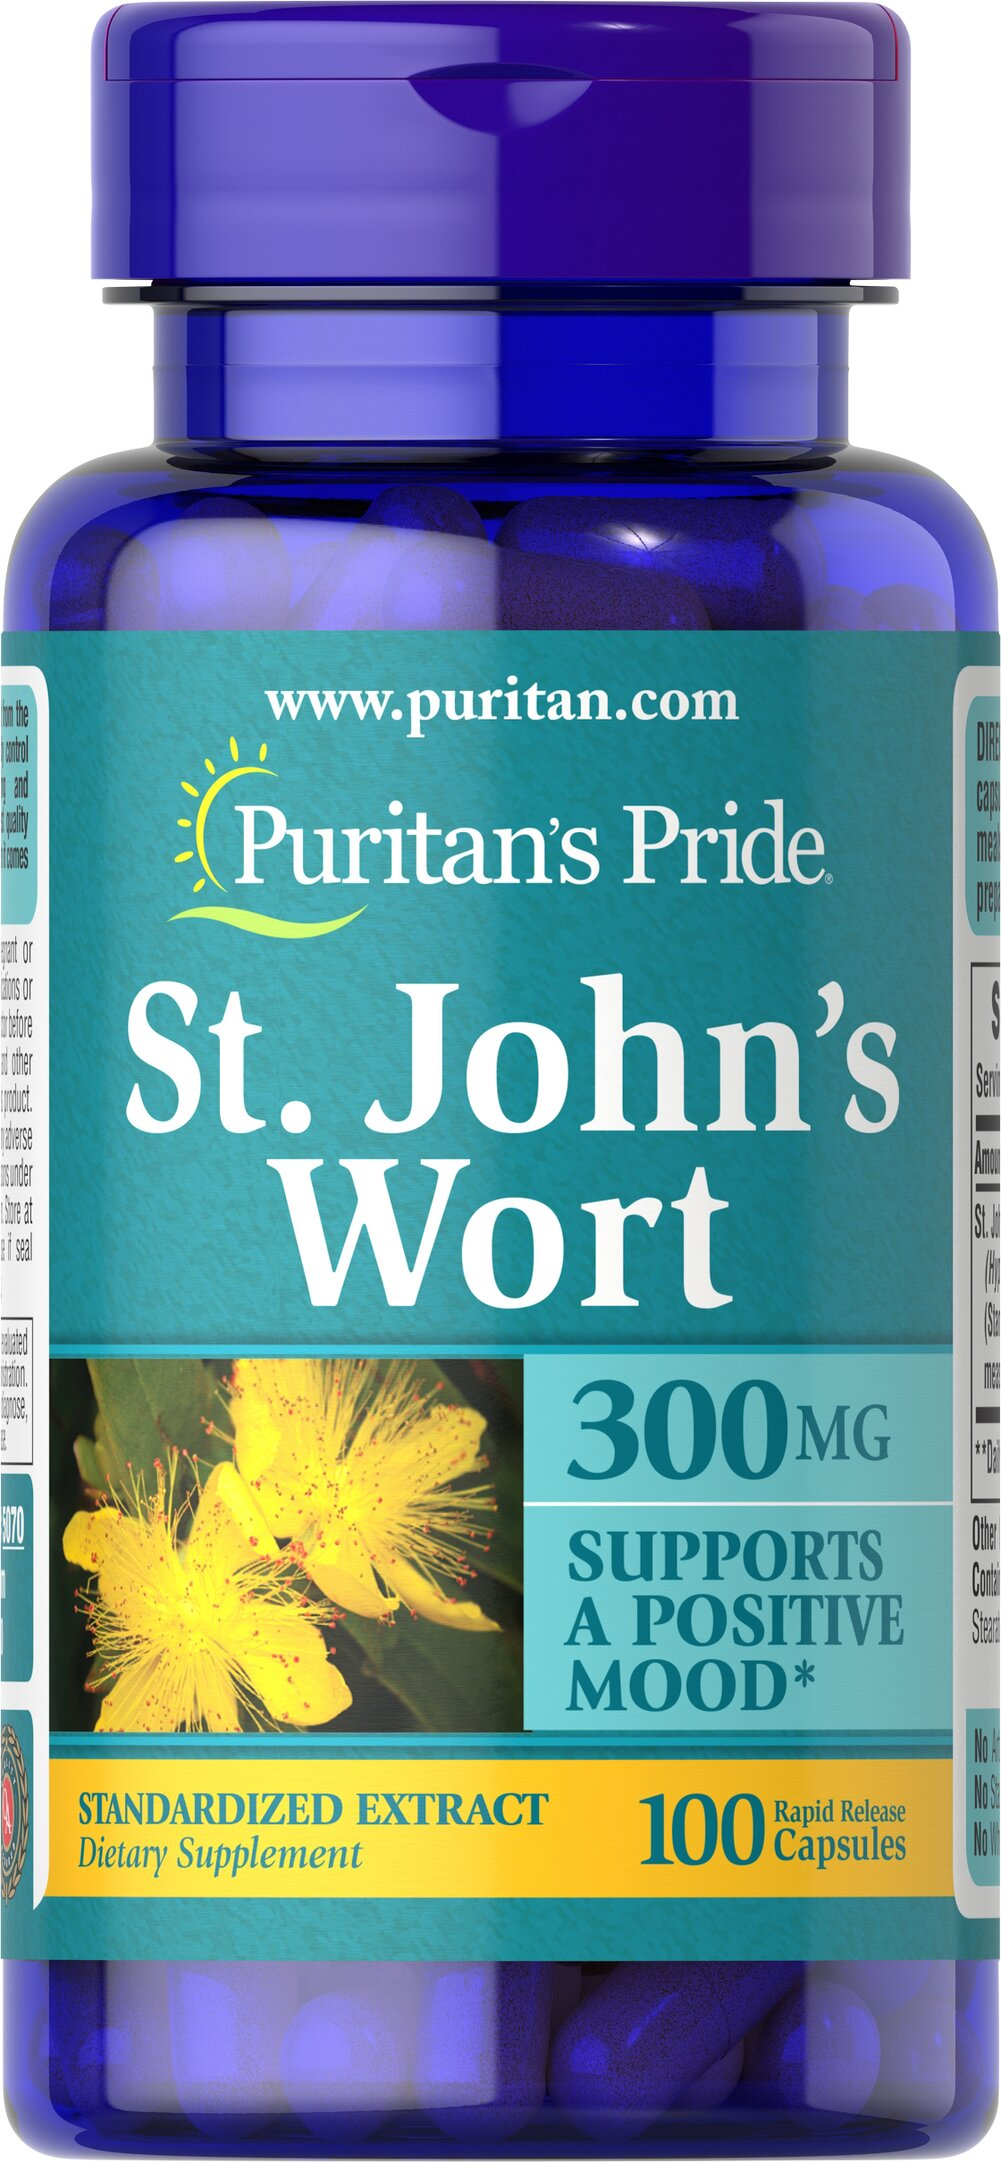 St. John's Wort Standardized Extract 300 mg <p>St. John's Wort has been used for centuries as a tonic and is clinically proven to promote mental well-being and peaceful mood.** At 900 milligrams per day, St. John's Wort can help maintain a positive mood and is perfect for anyone experiencing occasional anxiety and everyday stress.**</p> 100 Capsules 300 mg $12.99